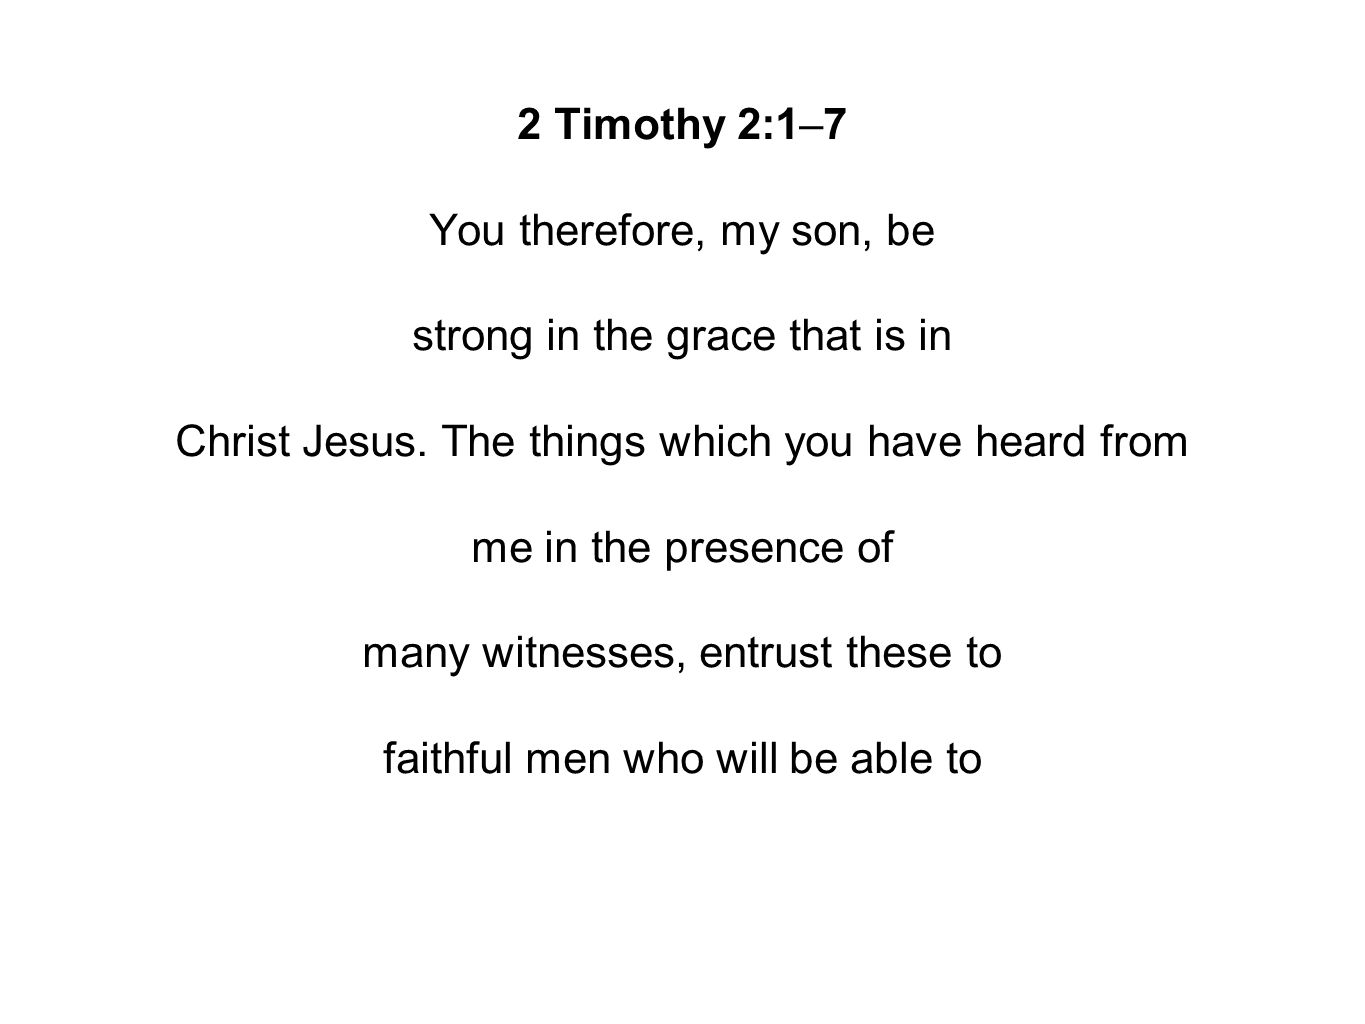 2 Timothy 2:1–7 You therefore, my son, be strong in the grace that is in Christ Jesus.